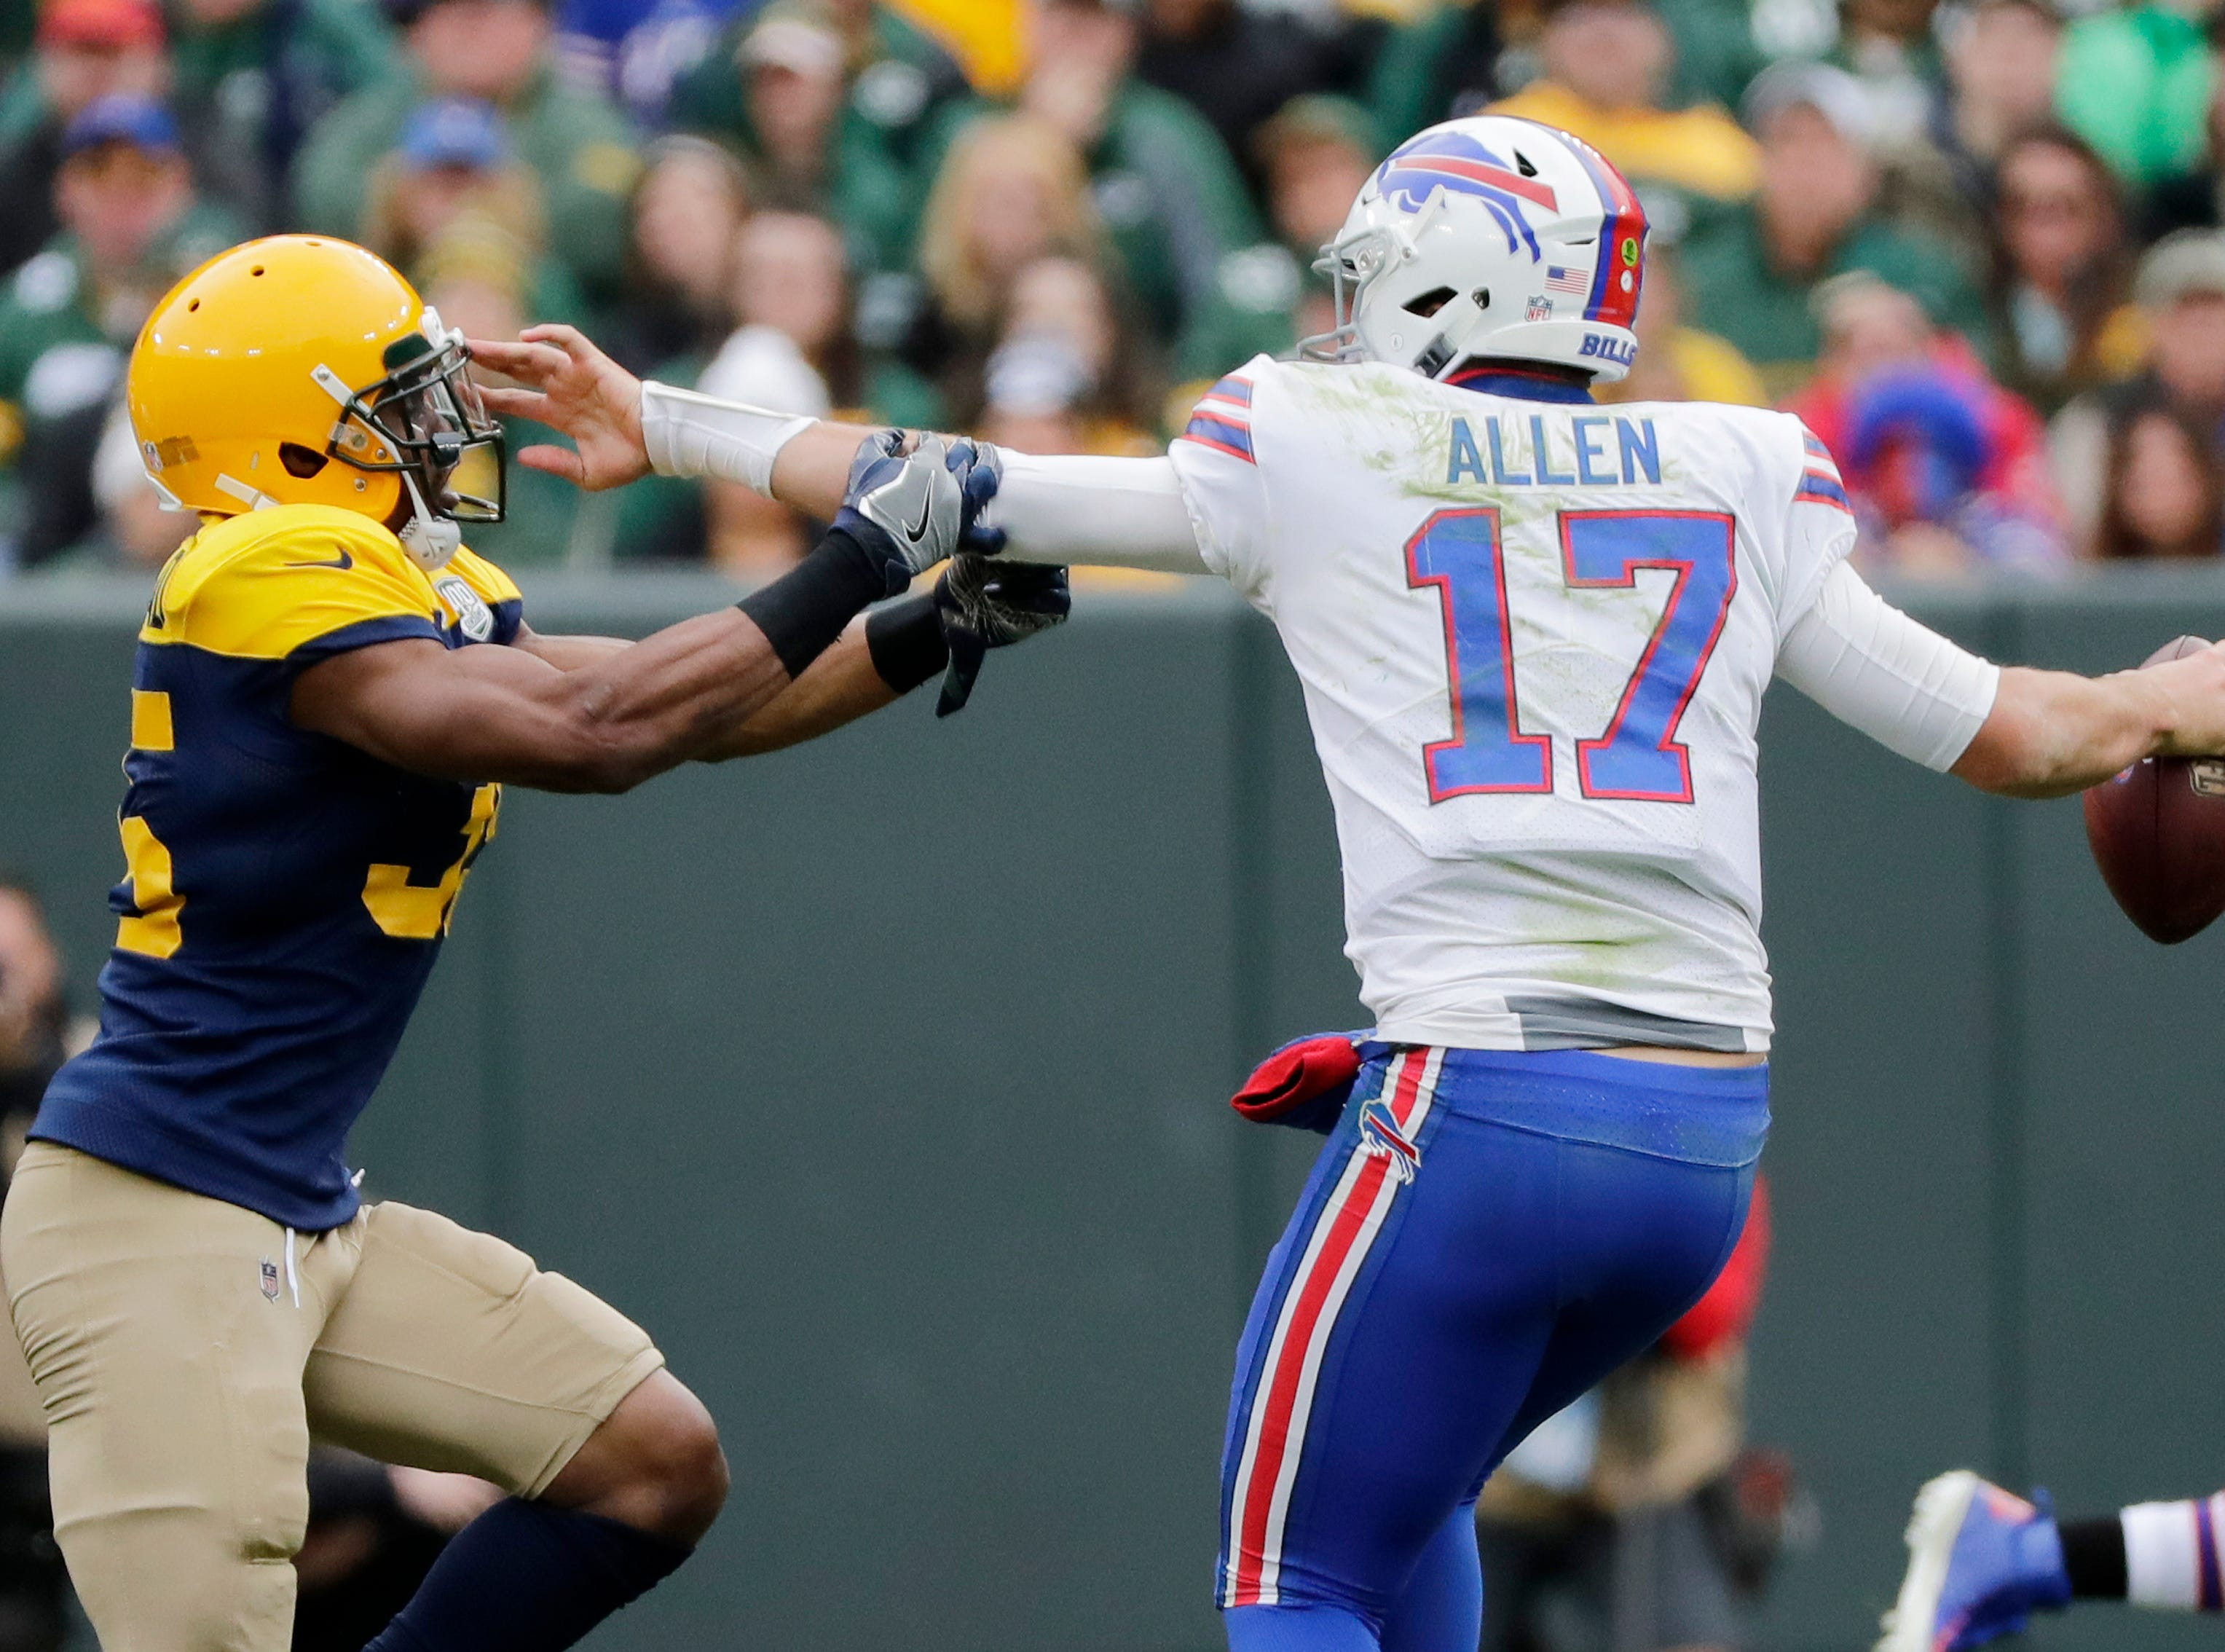 Buffalo Bills quarterback Josh Allen (17) is pressured by Green Bay Packers defensive back Jermaine Whitehead (35) in the fourth quarter at Lambeau Field on Sunday, September 30, 2018 in Green Bay, Wis.